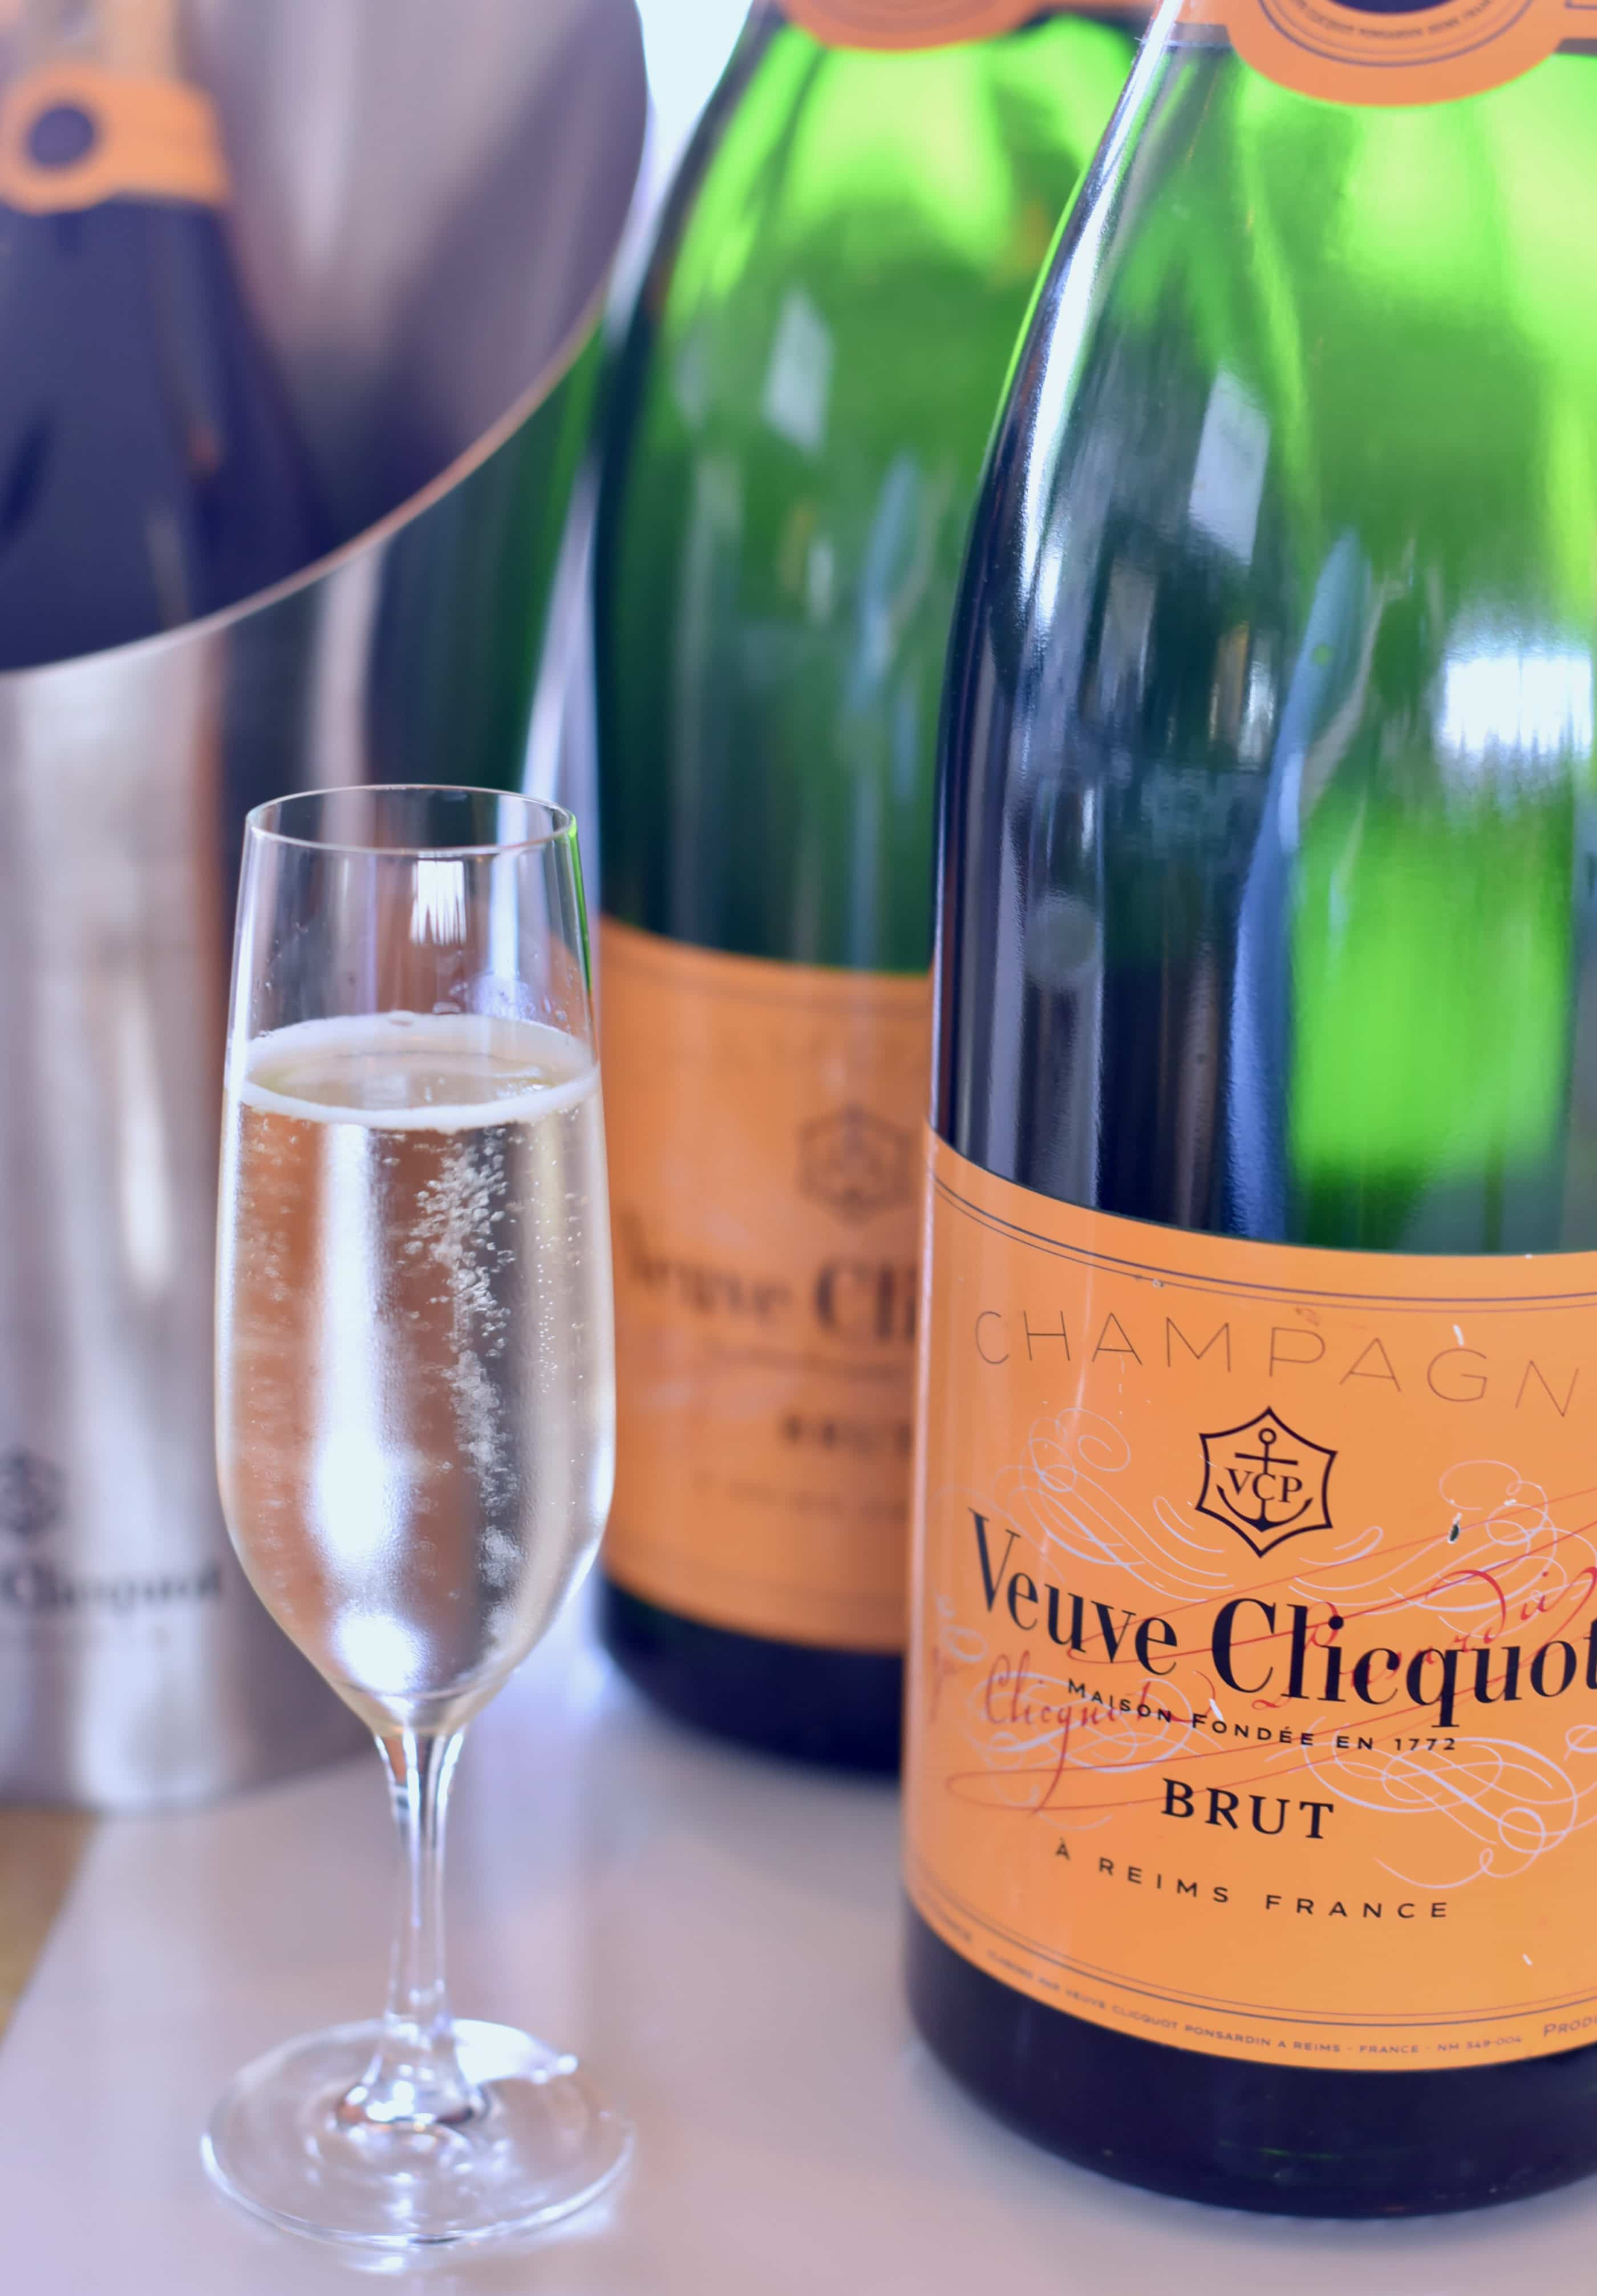 Veuve Cliquot happy hour happens on Wednesday at CUSP Dining and Drinks in La Jolla.